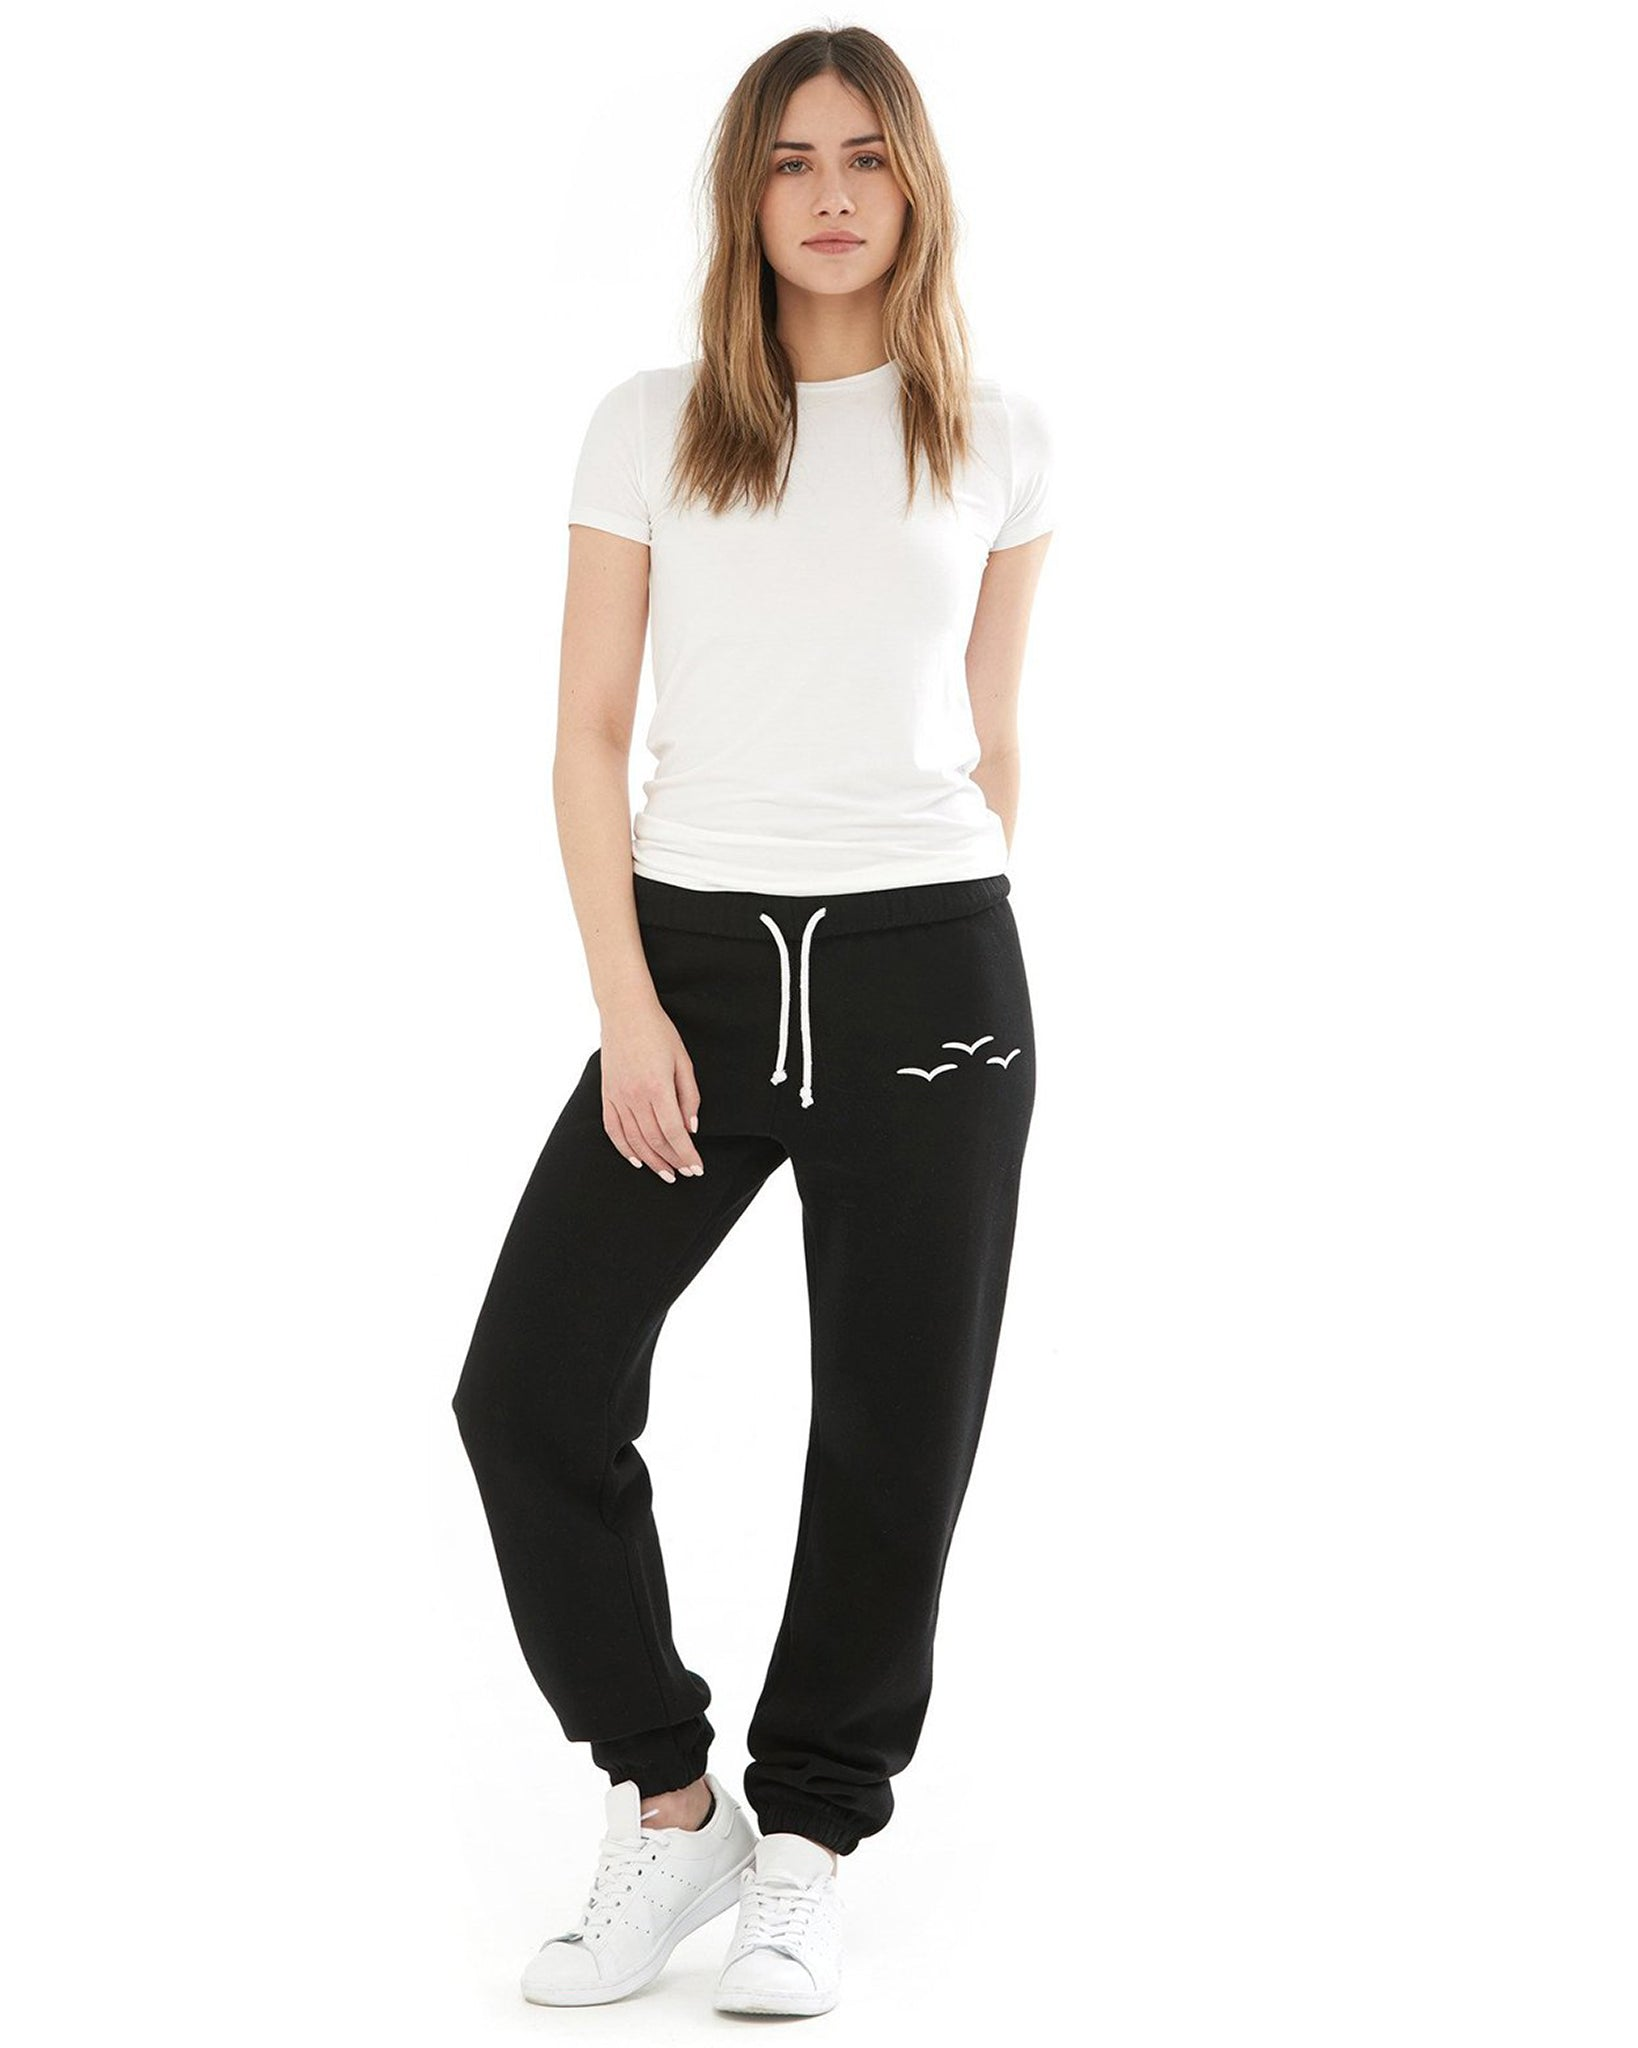 Lazypants Niki Fleece Sweatpants - Girls/Boys - Black - Activewear - Bottoms - Dancewear Centre Canada